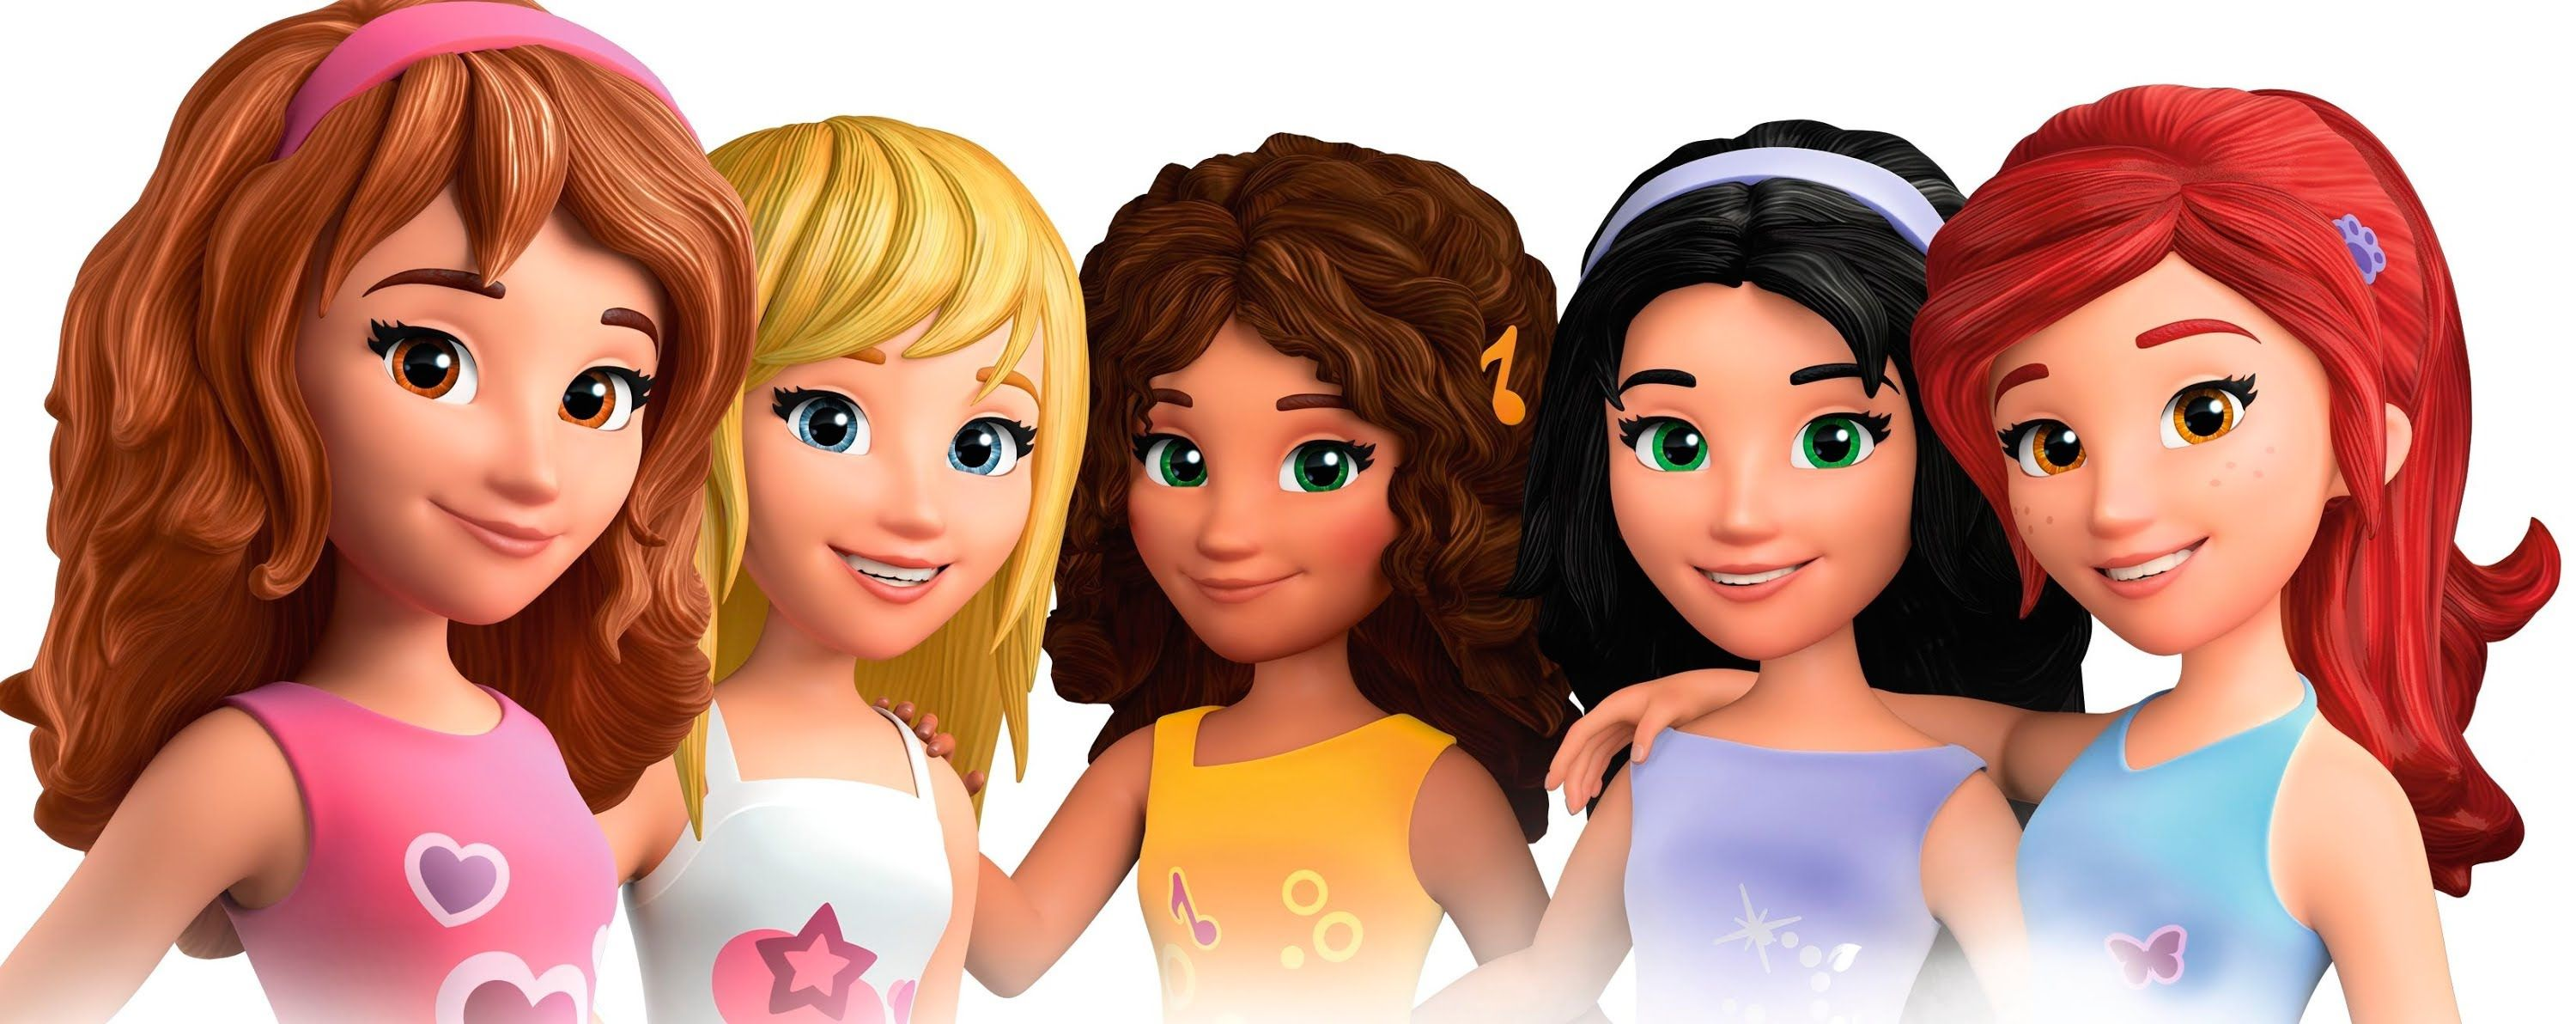 The New Music Video From The Lego Friends Http X2f X2f Friends Lego Com X2f Genre Brickpop Artist Lego Friends Best Friends Forever Lego Friends Party